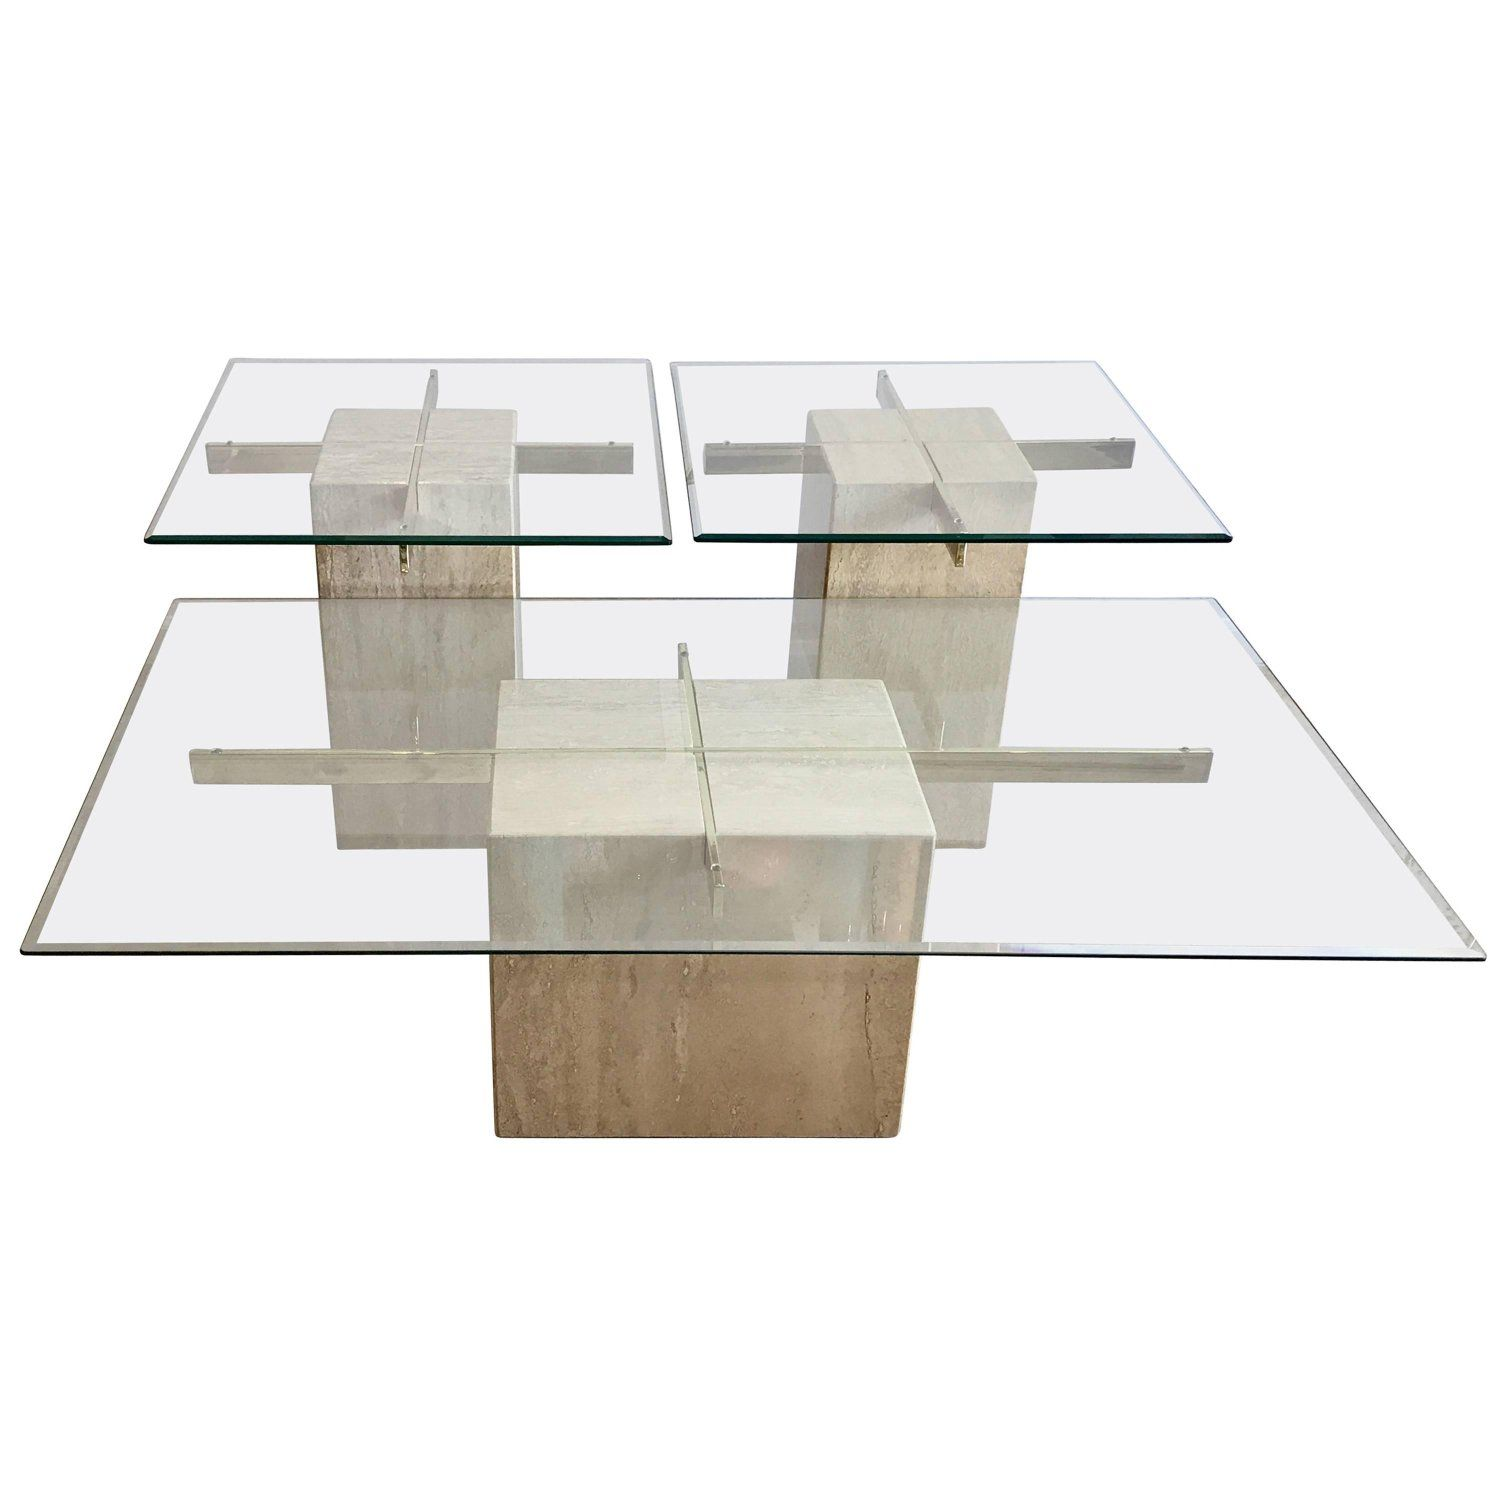 Italian Glass Coffee Table.Travertine Marble And Glass Coffee Table And Side Tables By Artedi